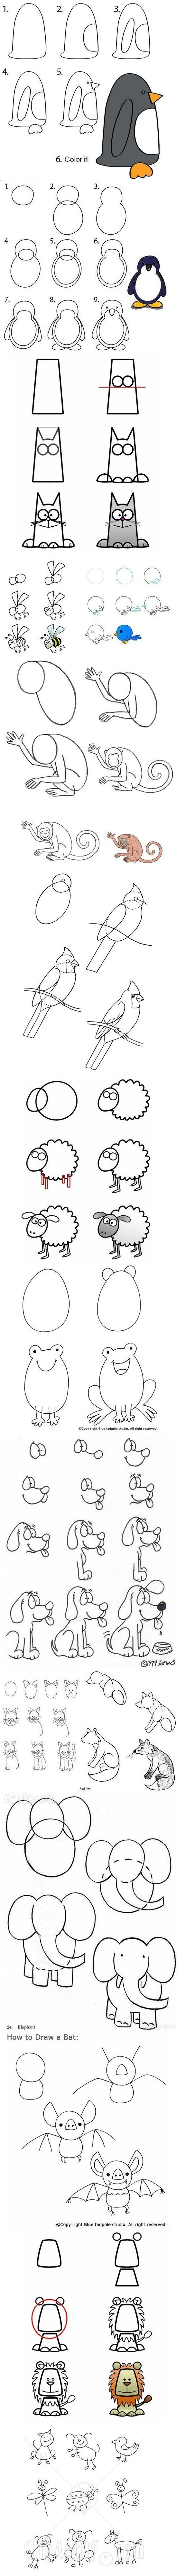 how to draw easy pictures